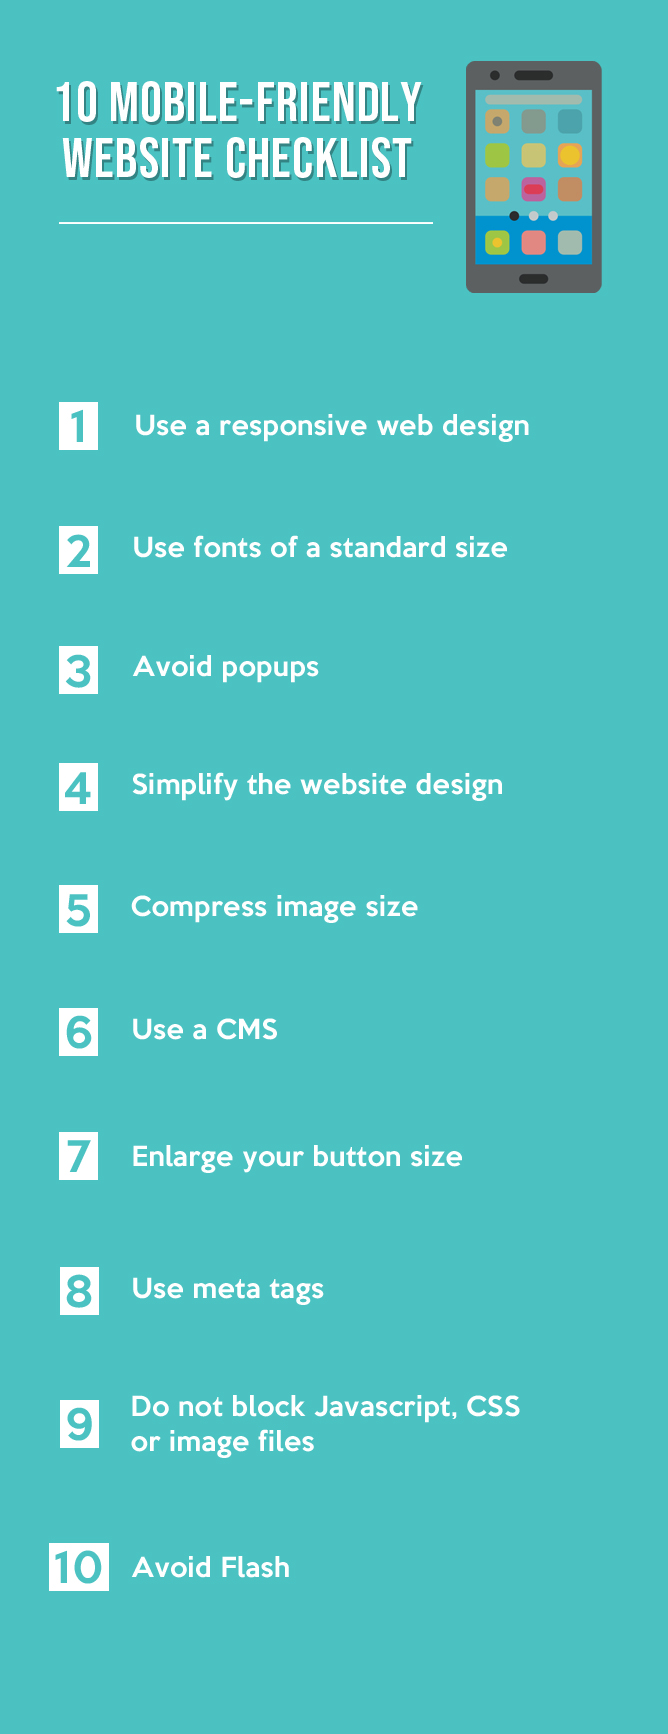 10 MOBILE-FRIENDLY WEBSITE CHECKLIST - INFOGRAPHIC